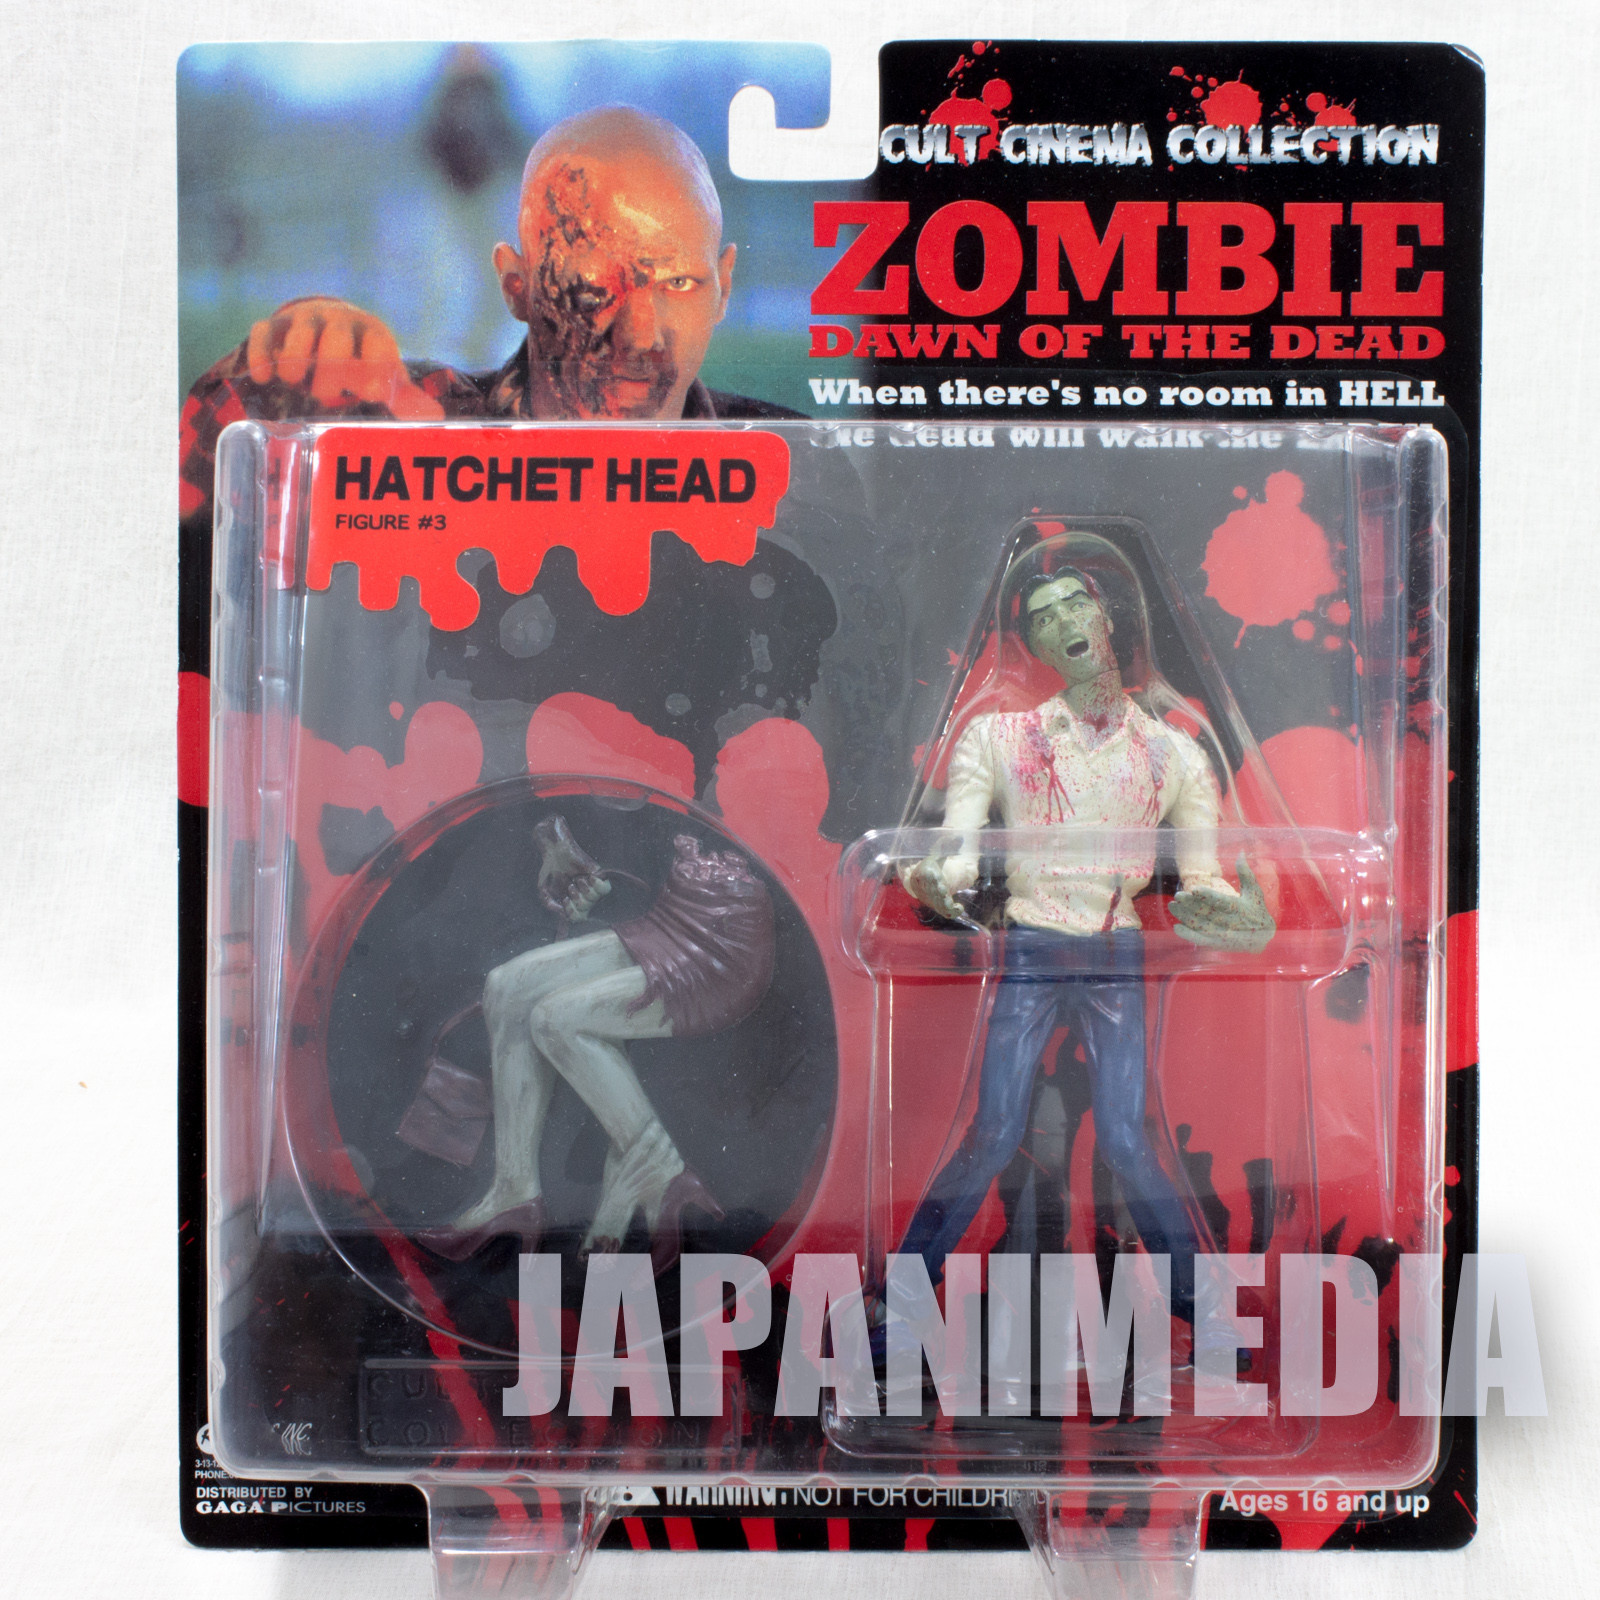 Zombie Dawn of the Dead Hatchet Head Figure Cult Cinema Collection